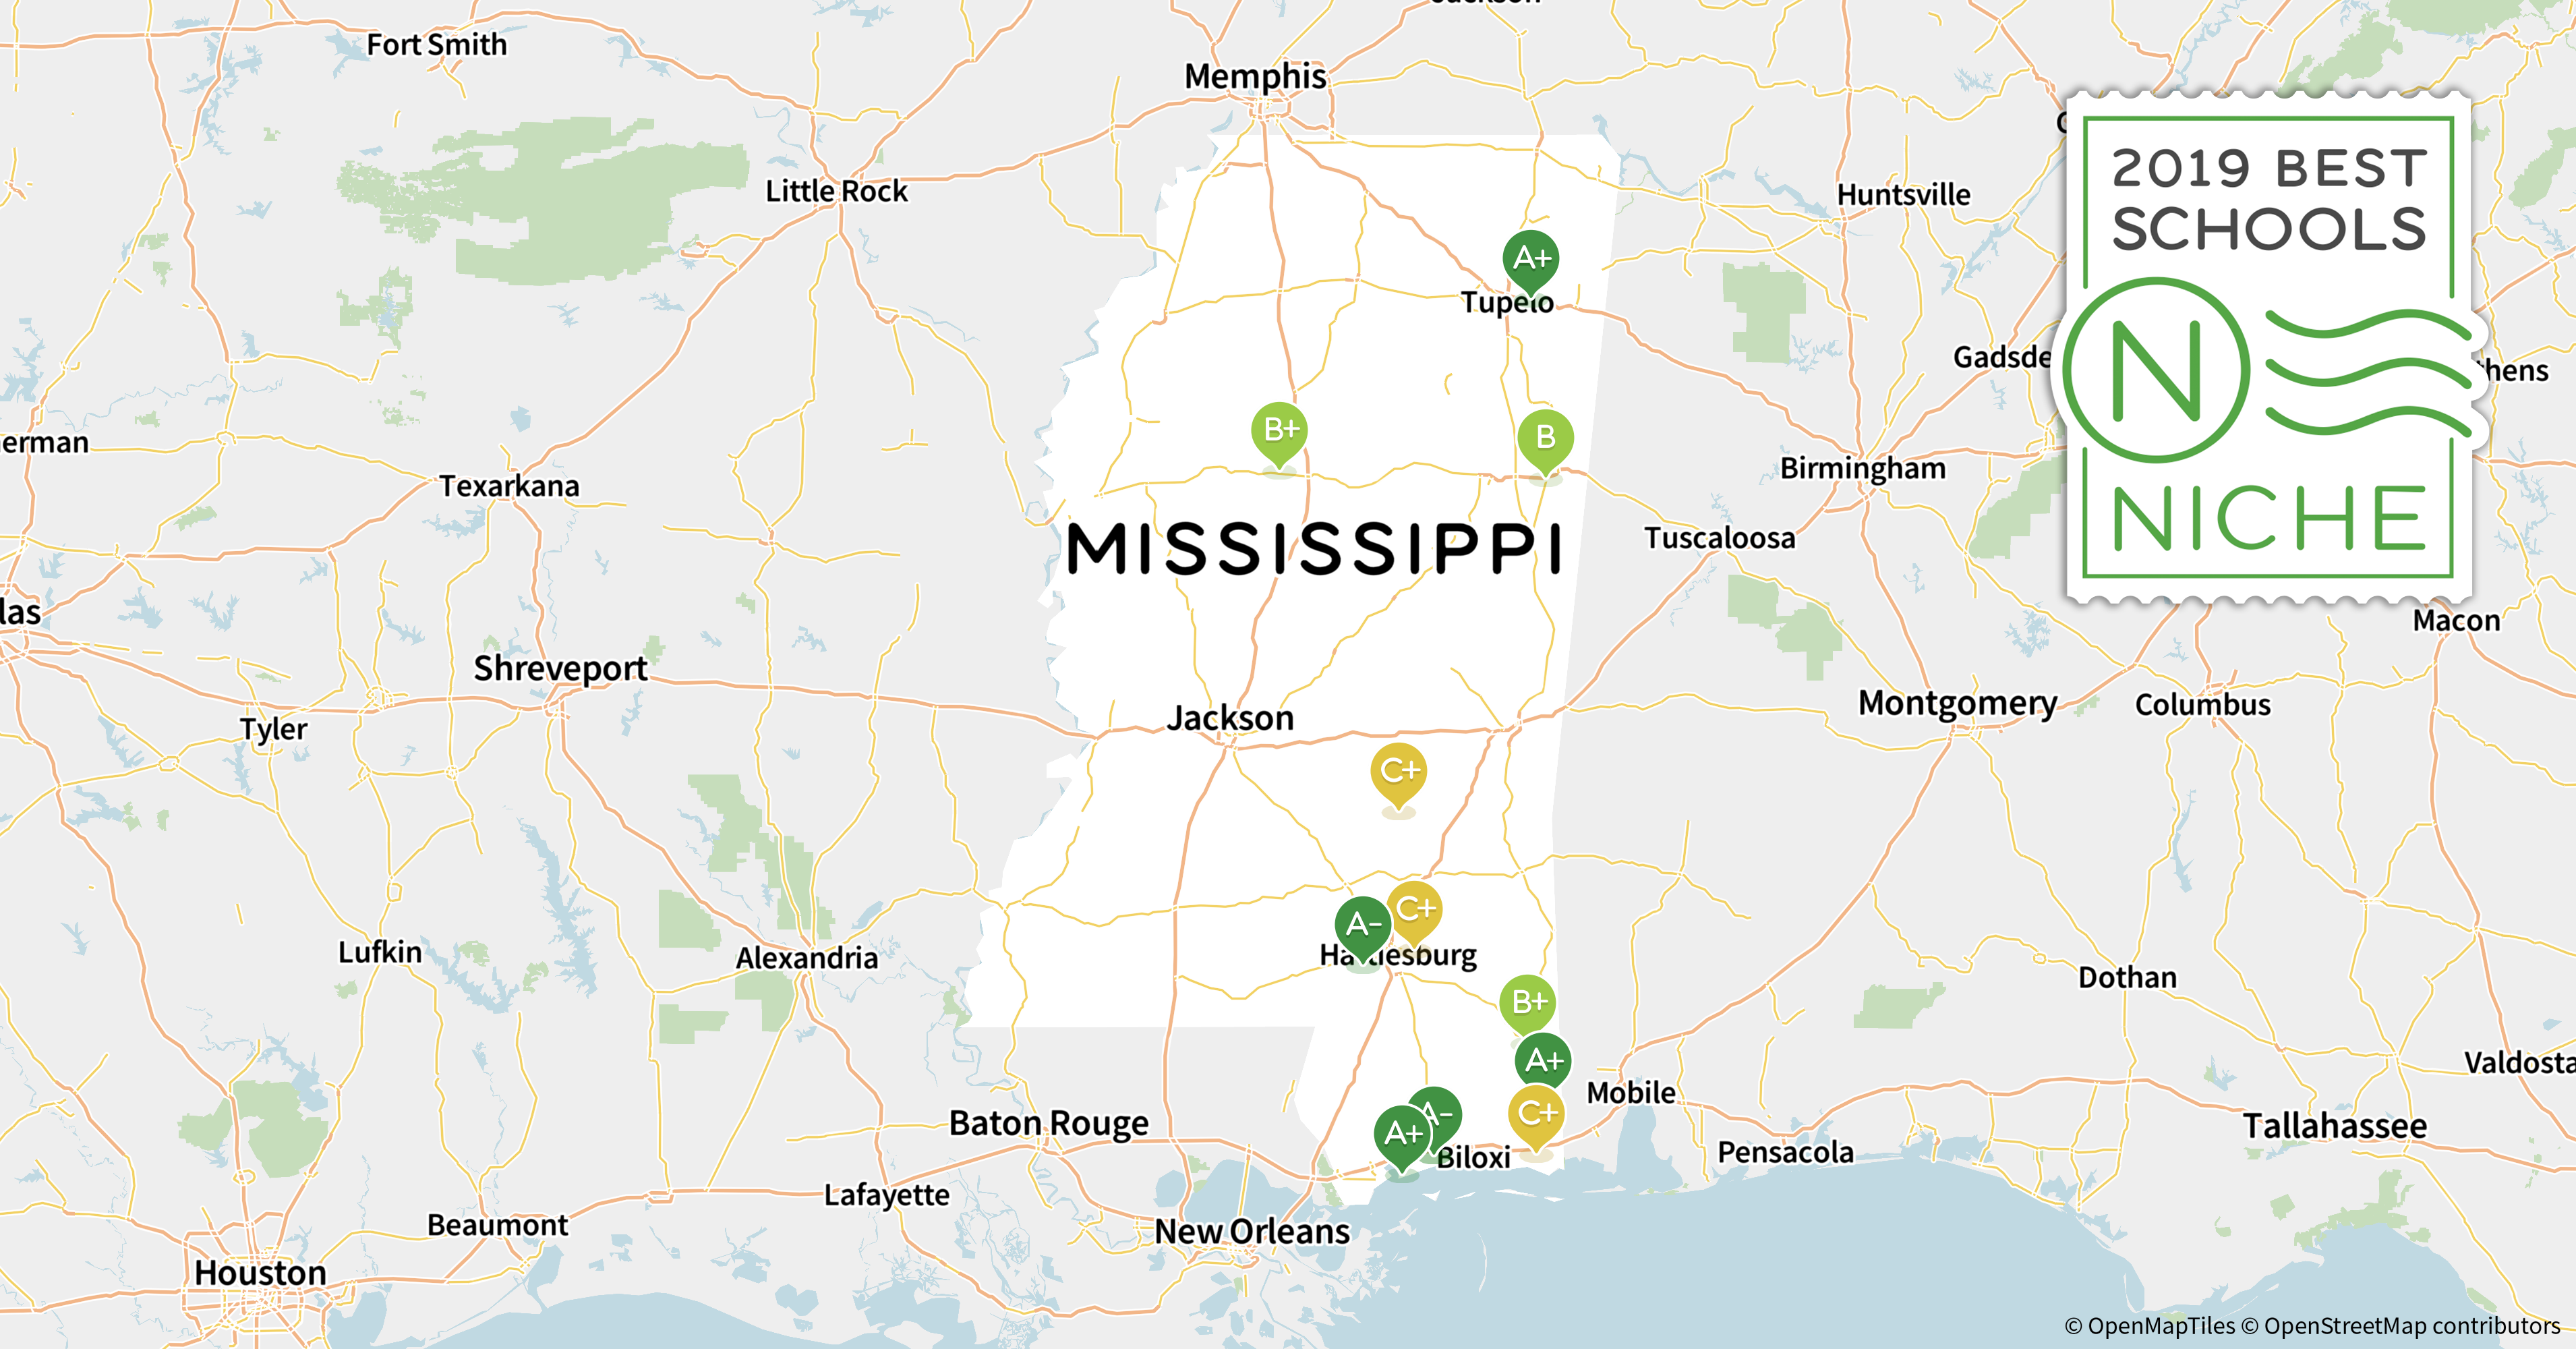 Hattiesburg Ms Zip Code Map.2019 Best Private High Schools In Mississippi Niche